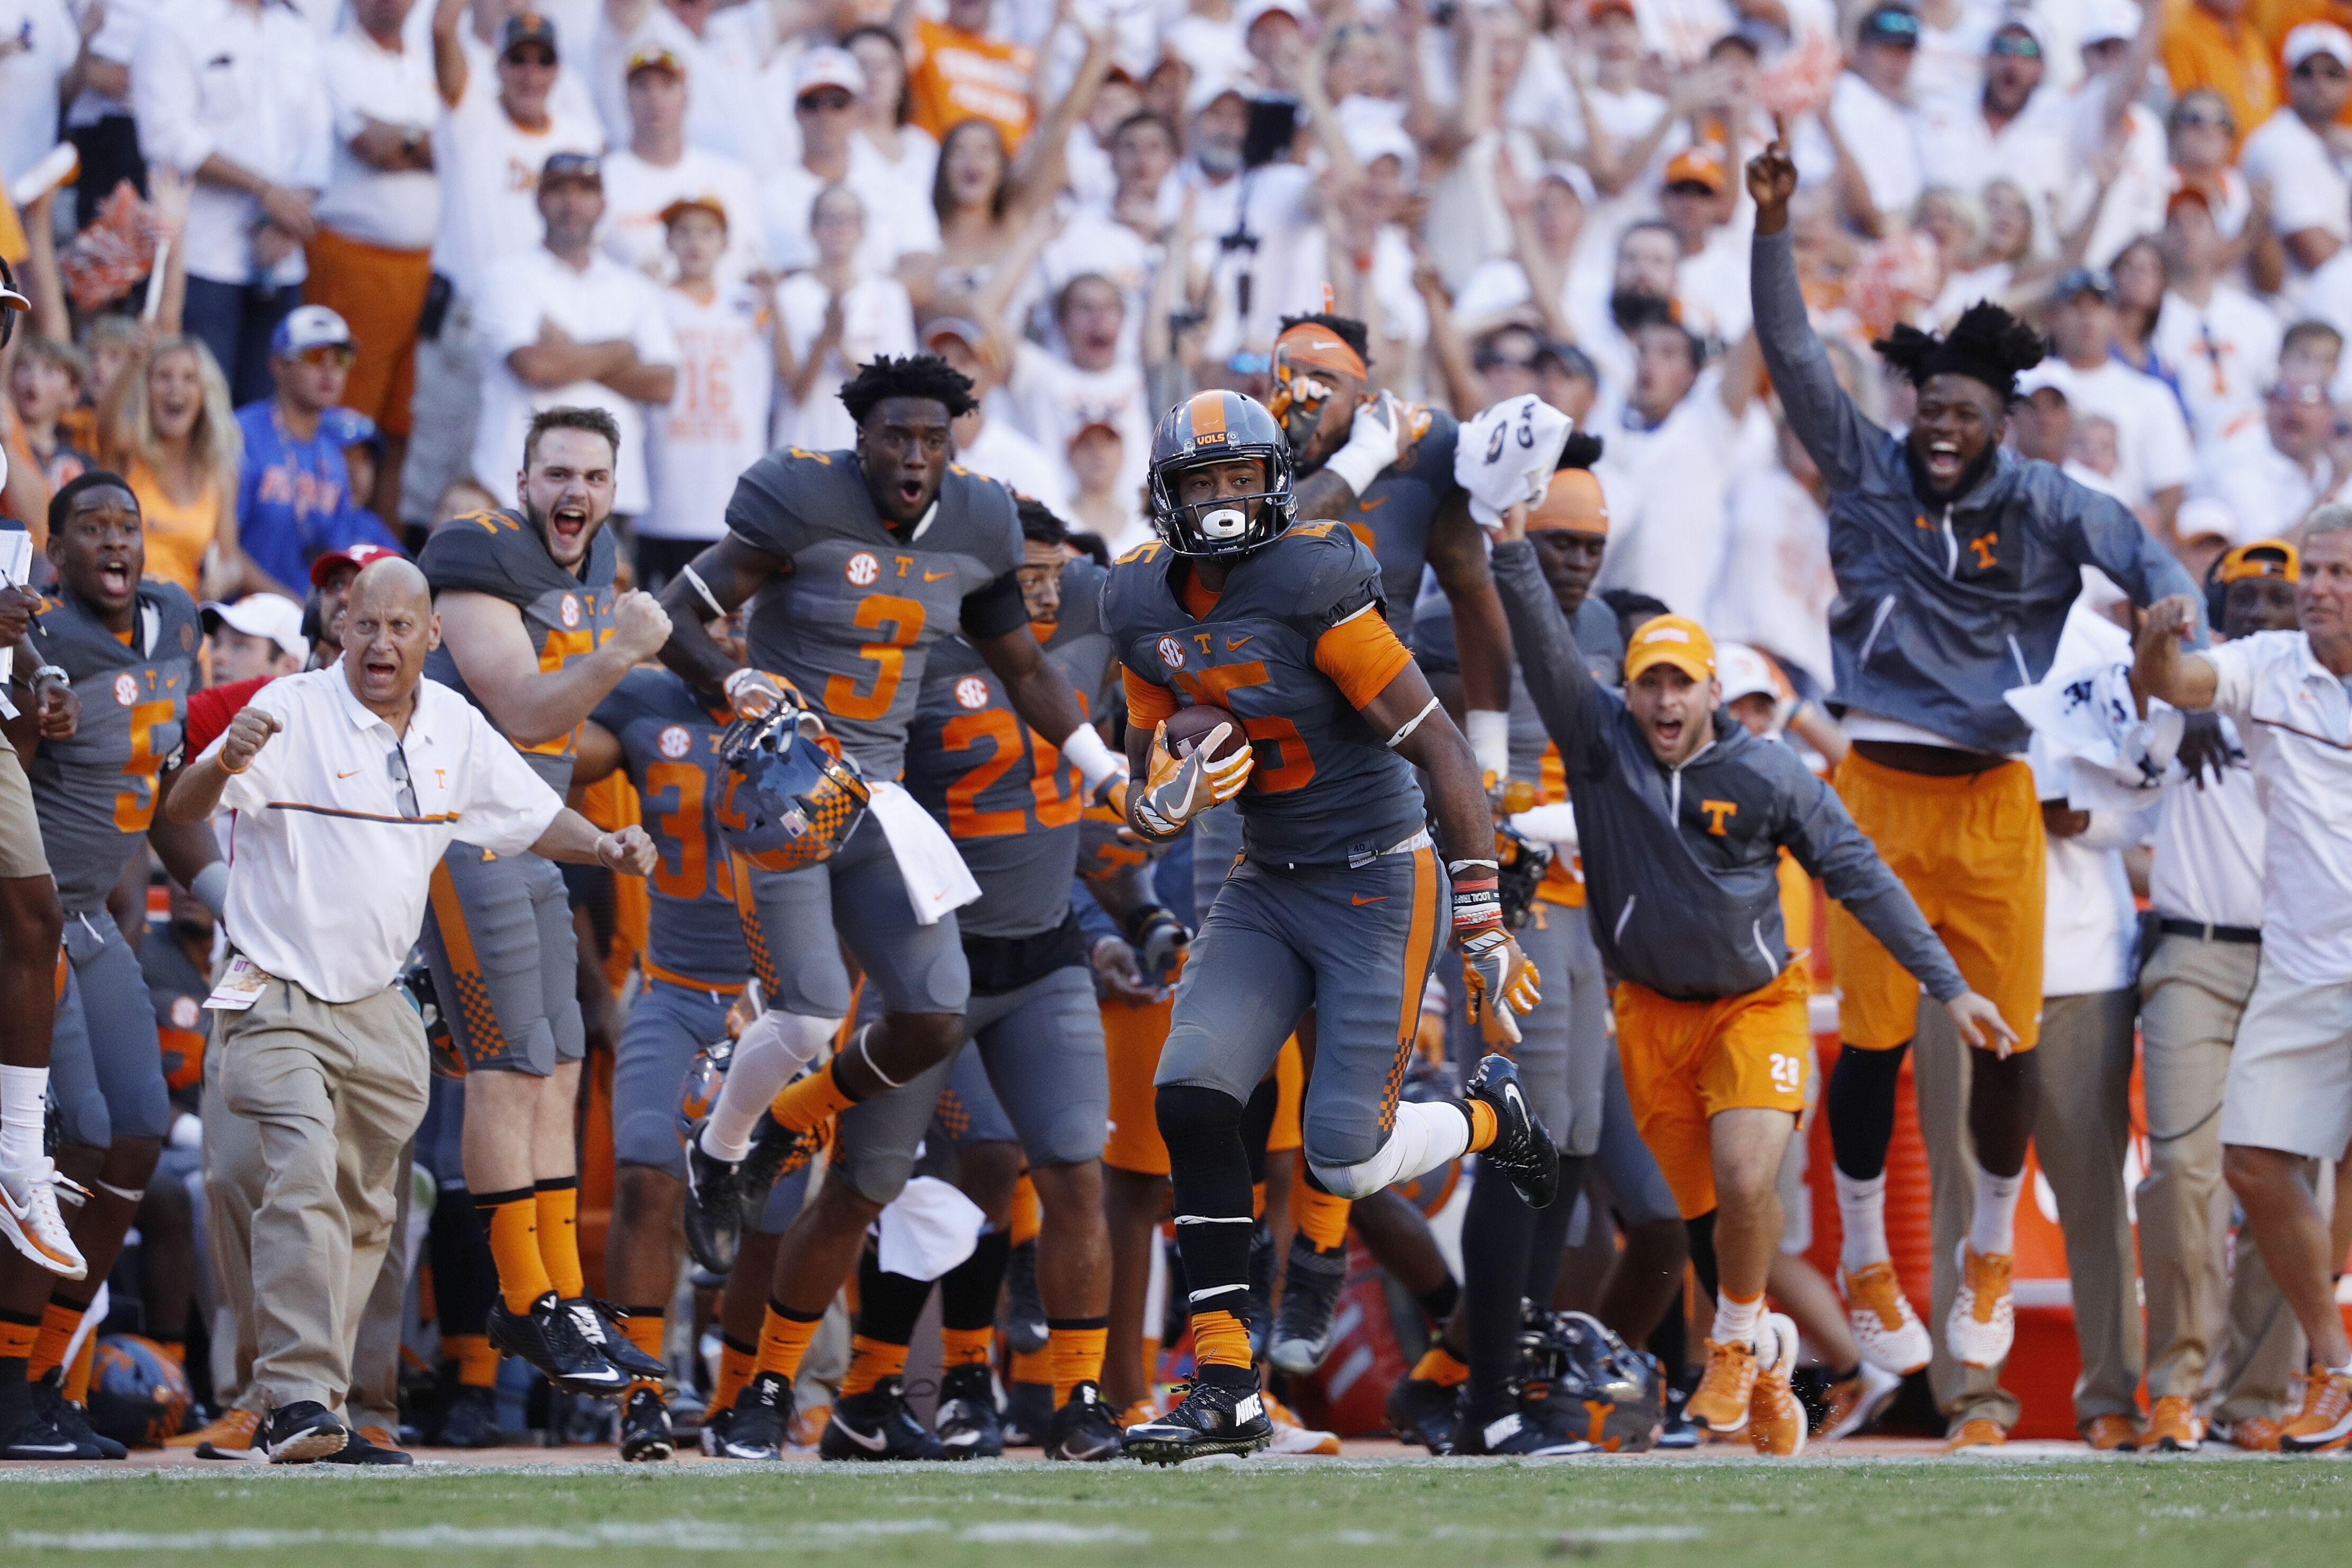 finest selection d6f45 0d7ff Tennessee football: Vols, Jeremy Pruitt shouldn't abandon ...